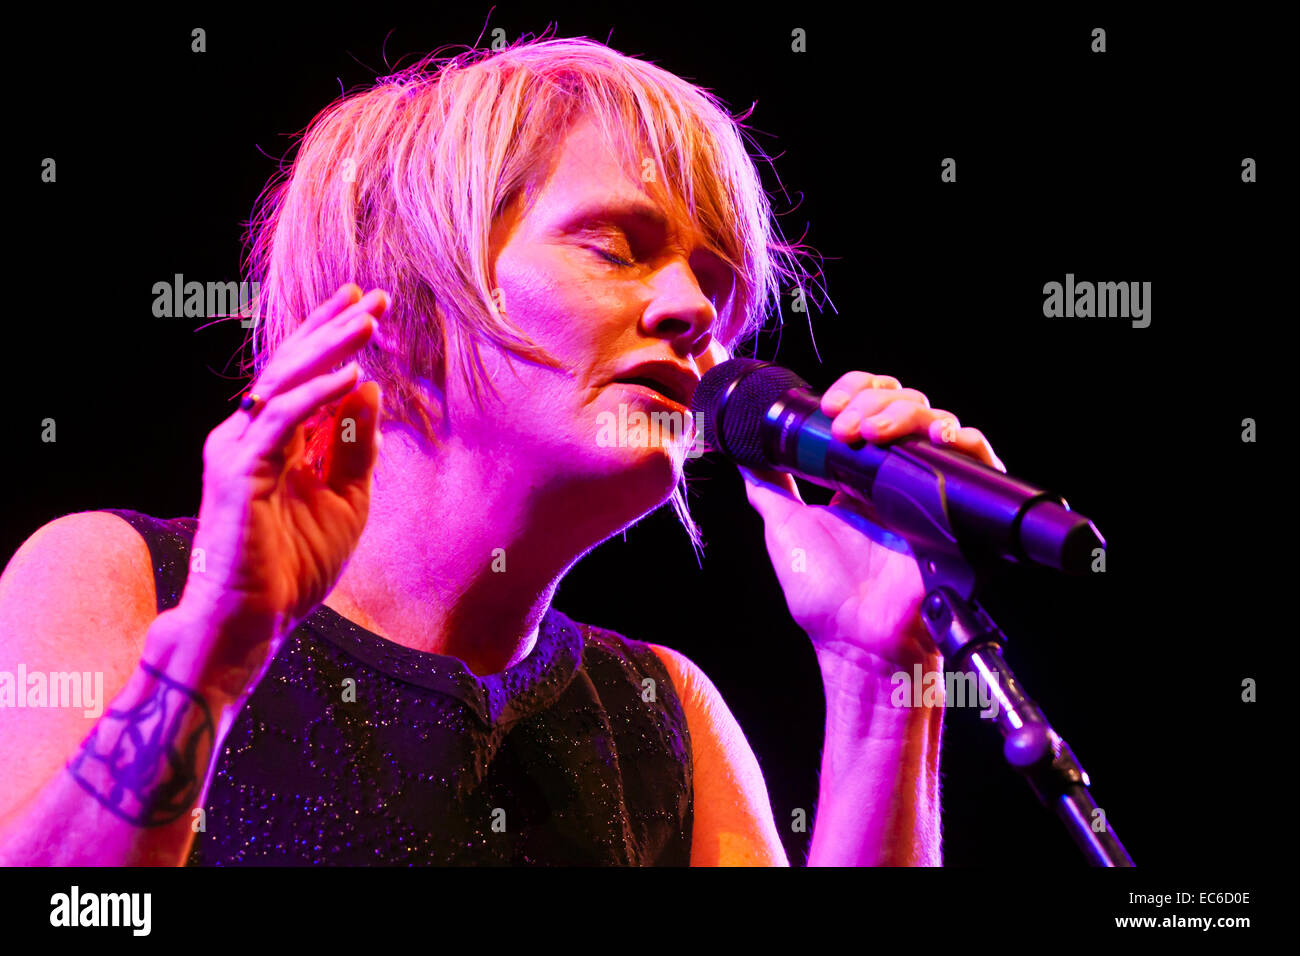 SHAWN COLVIN sings for BILLY CHILDS on the main stage of the MONTEREY JAZZ FESTIVAL - Stock Image